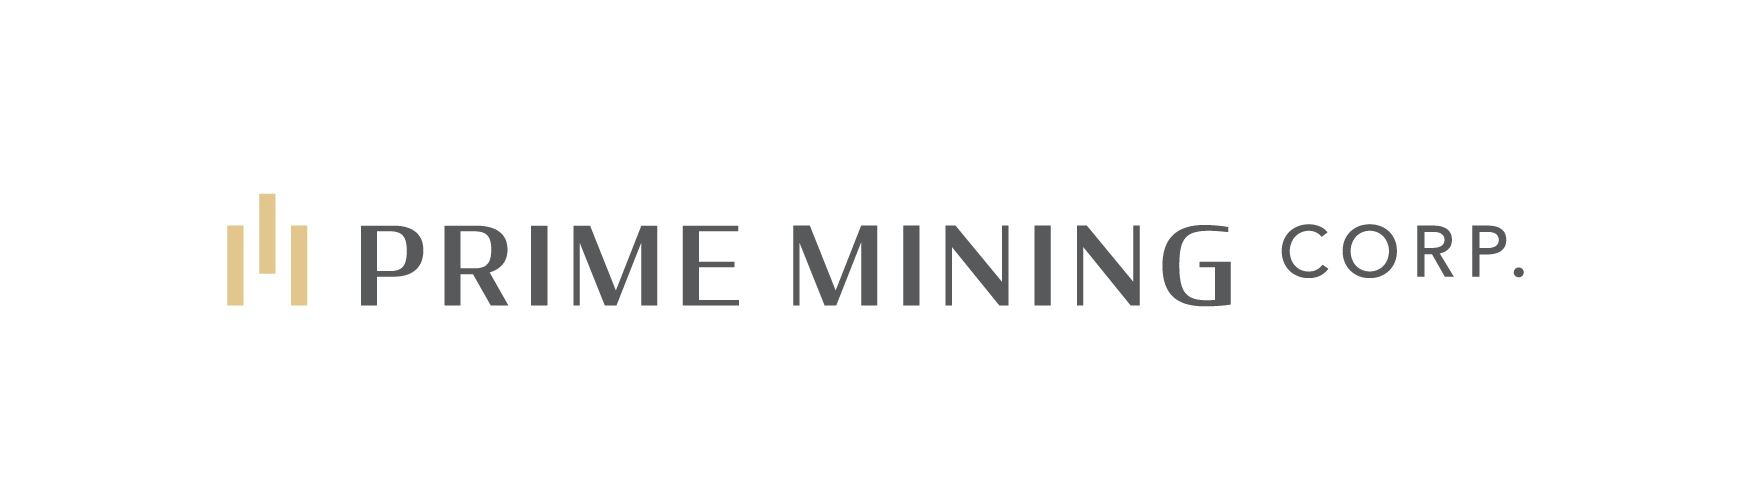 Prime Mining Adds 5th Core Drill at Los Reyes